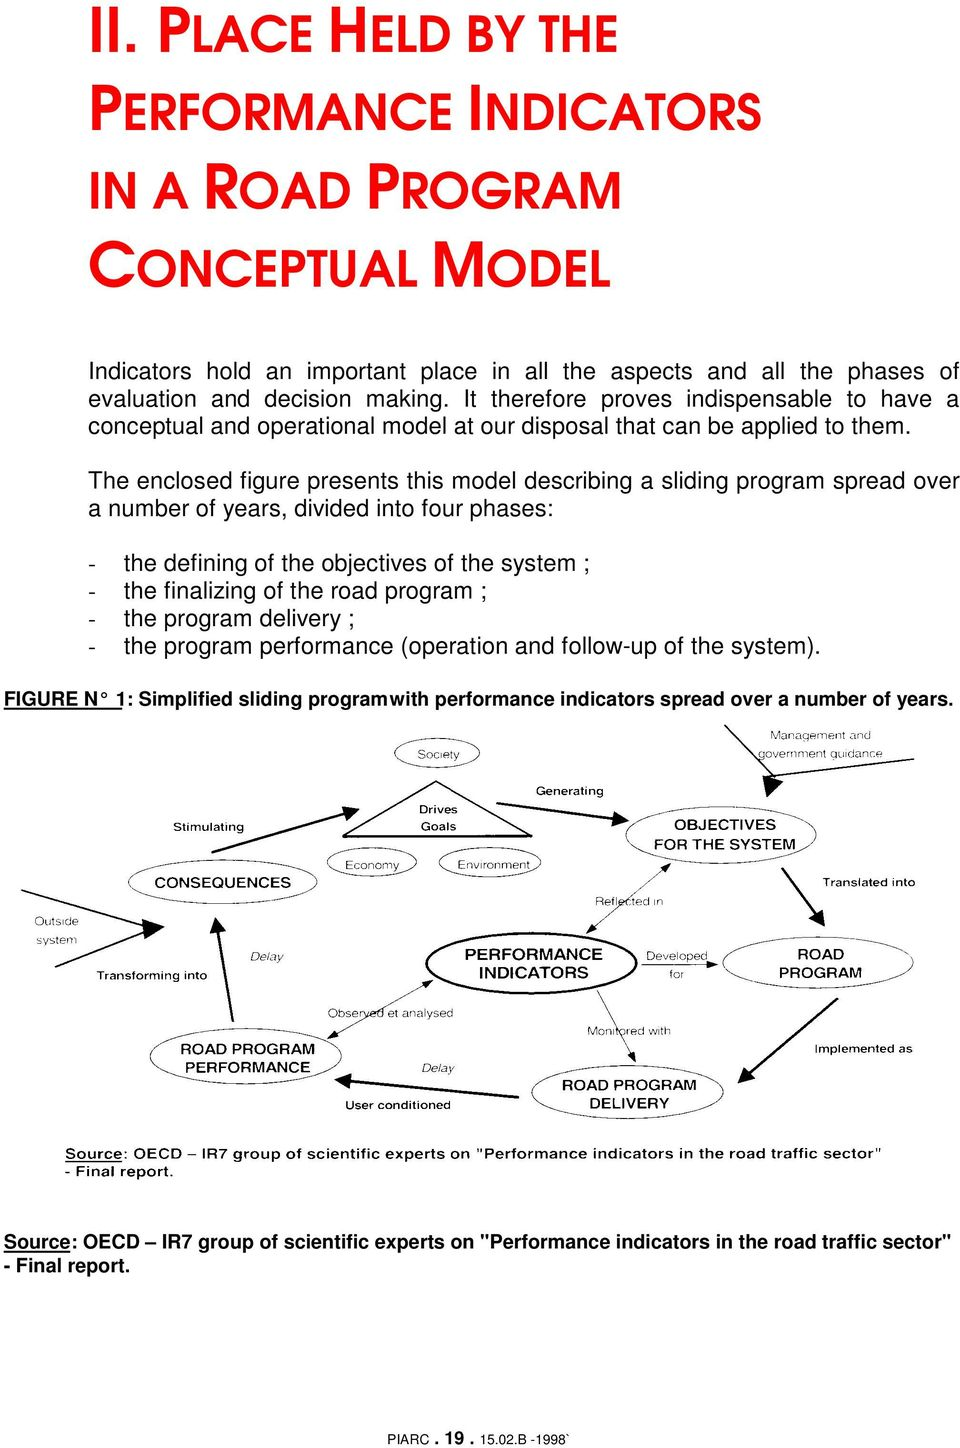 The enclosed figure presents this model describing a sliding program spread over a number of years, divided into four phases: - the defining of the objectives of the system ; - the finalizing of the